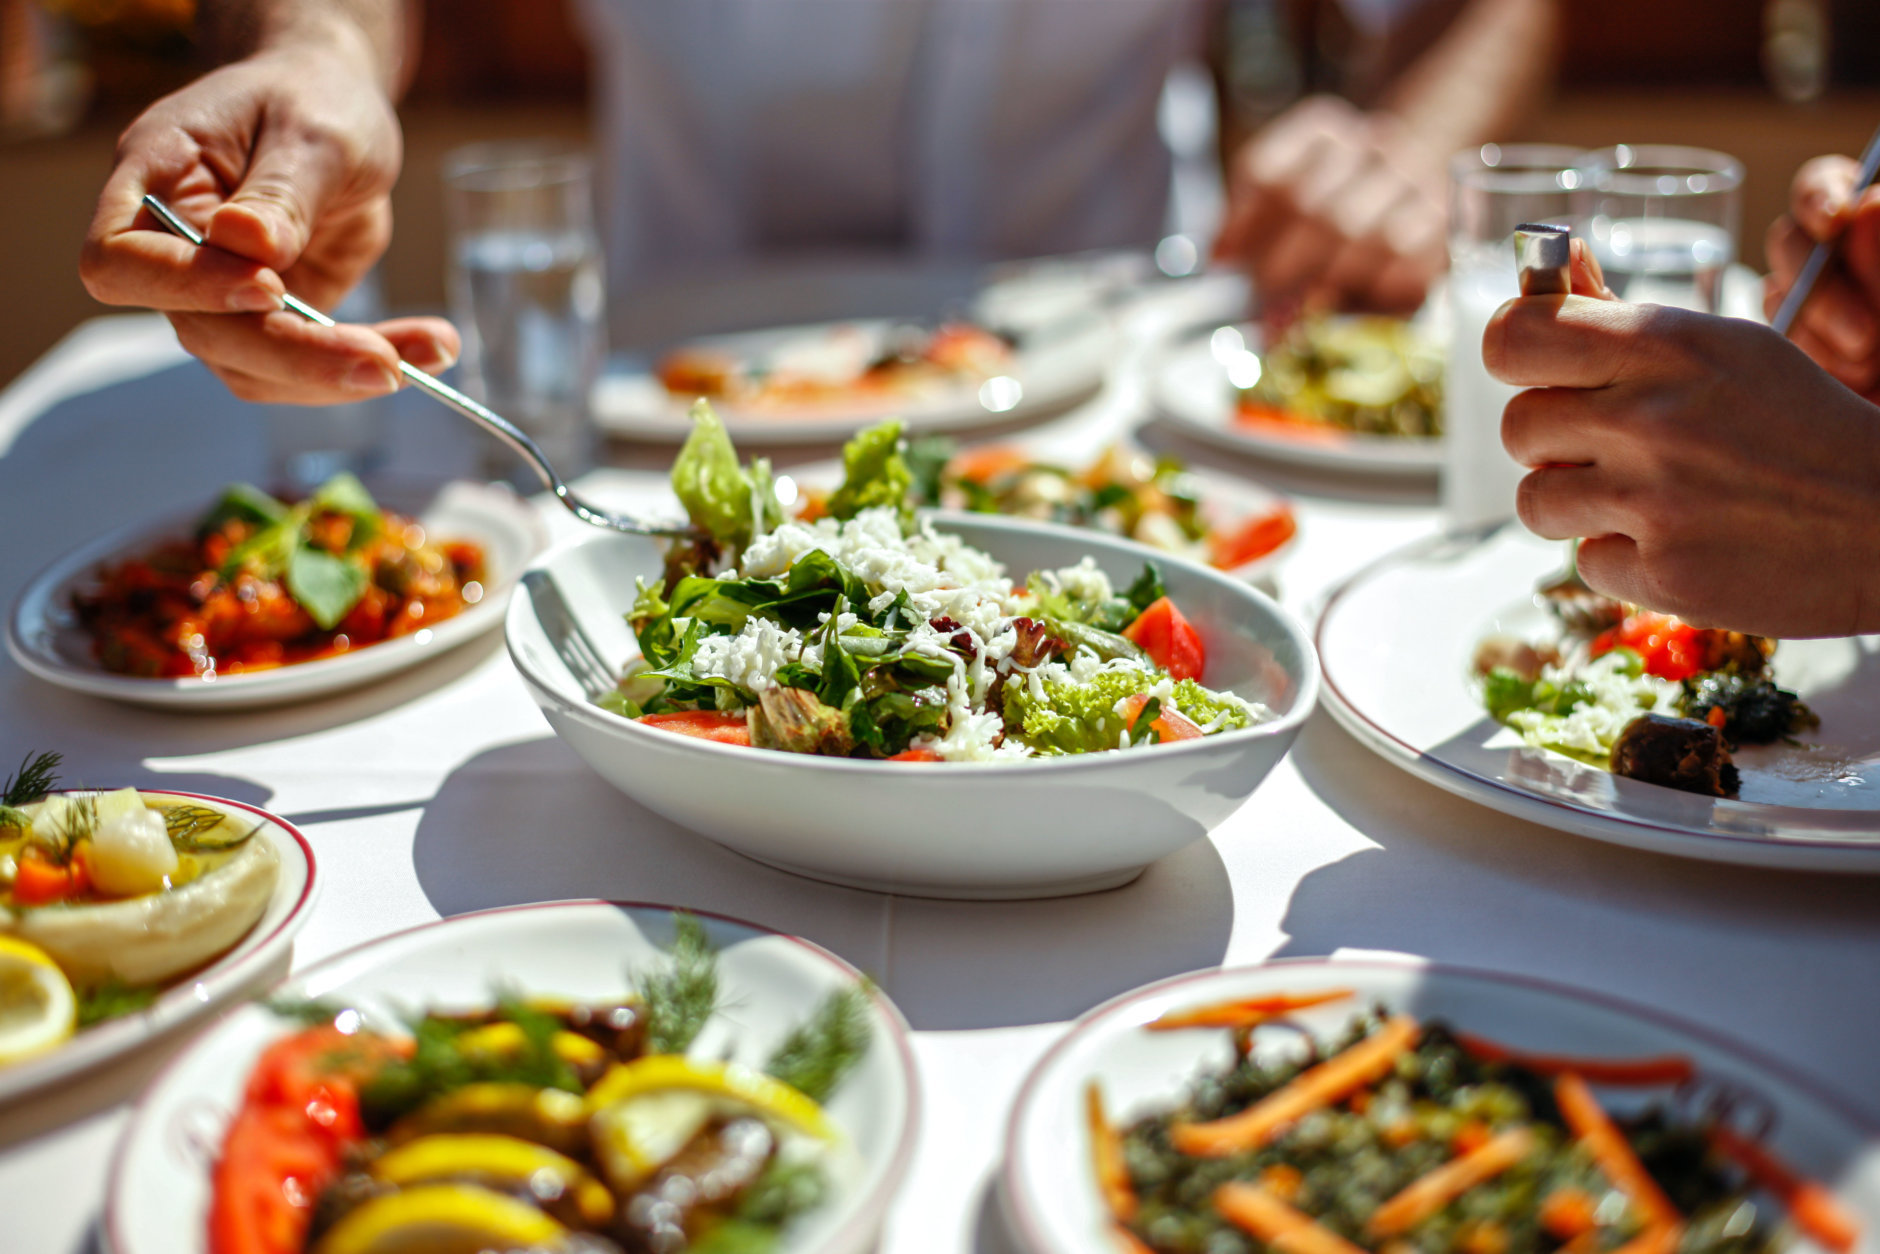 Couple  Eating Lunch with Fresh Salad and Appetizers